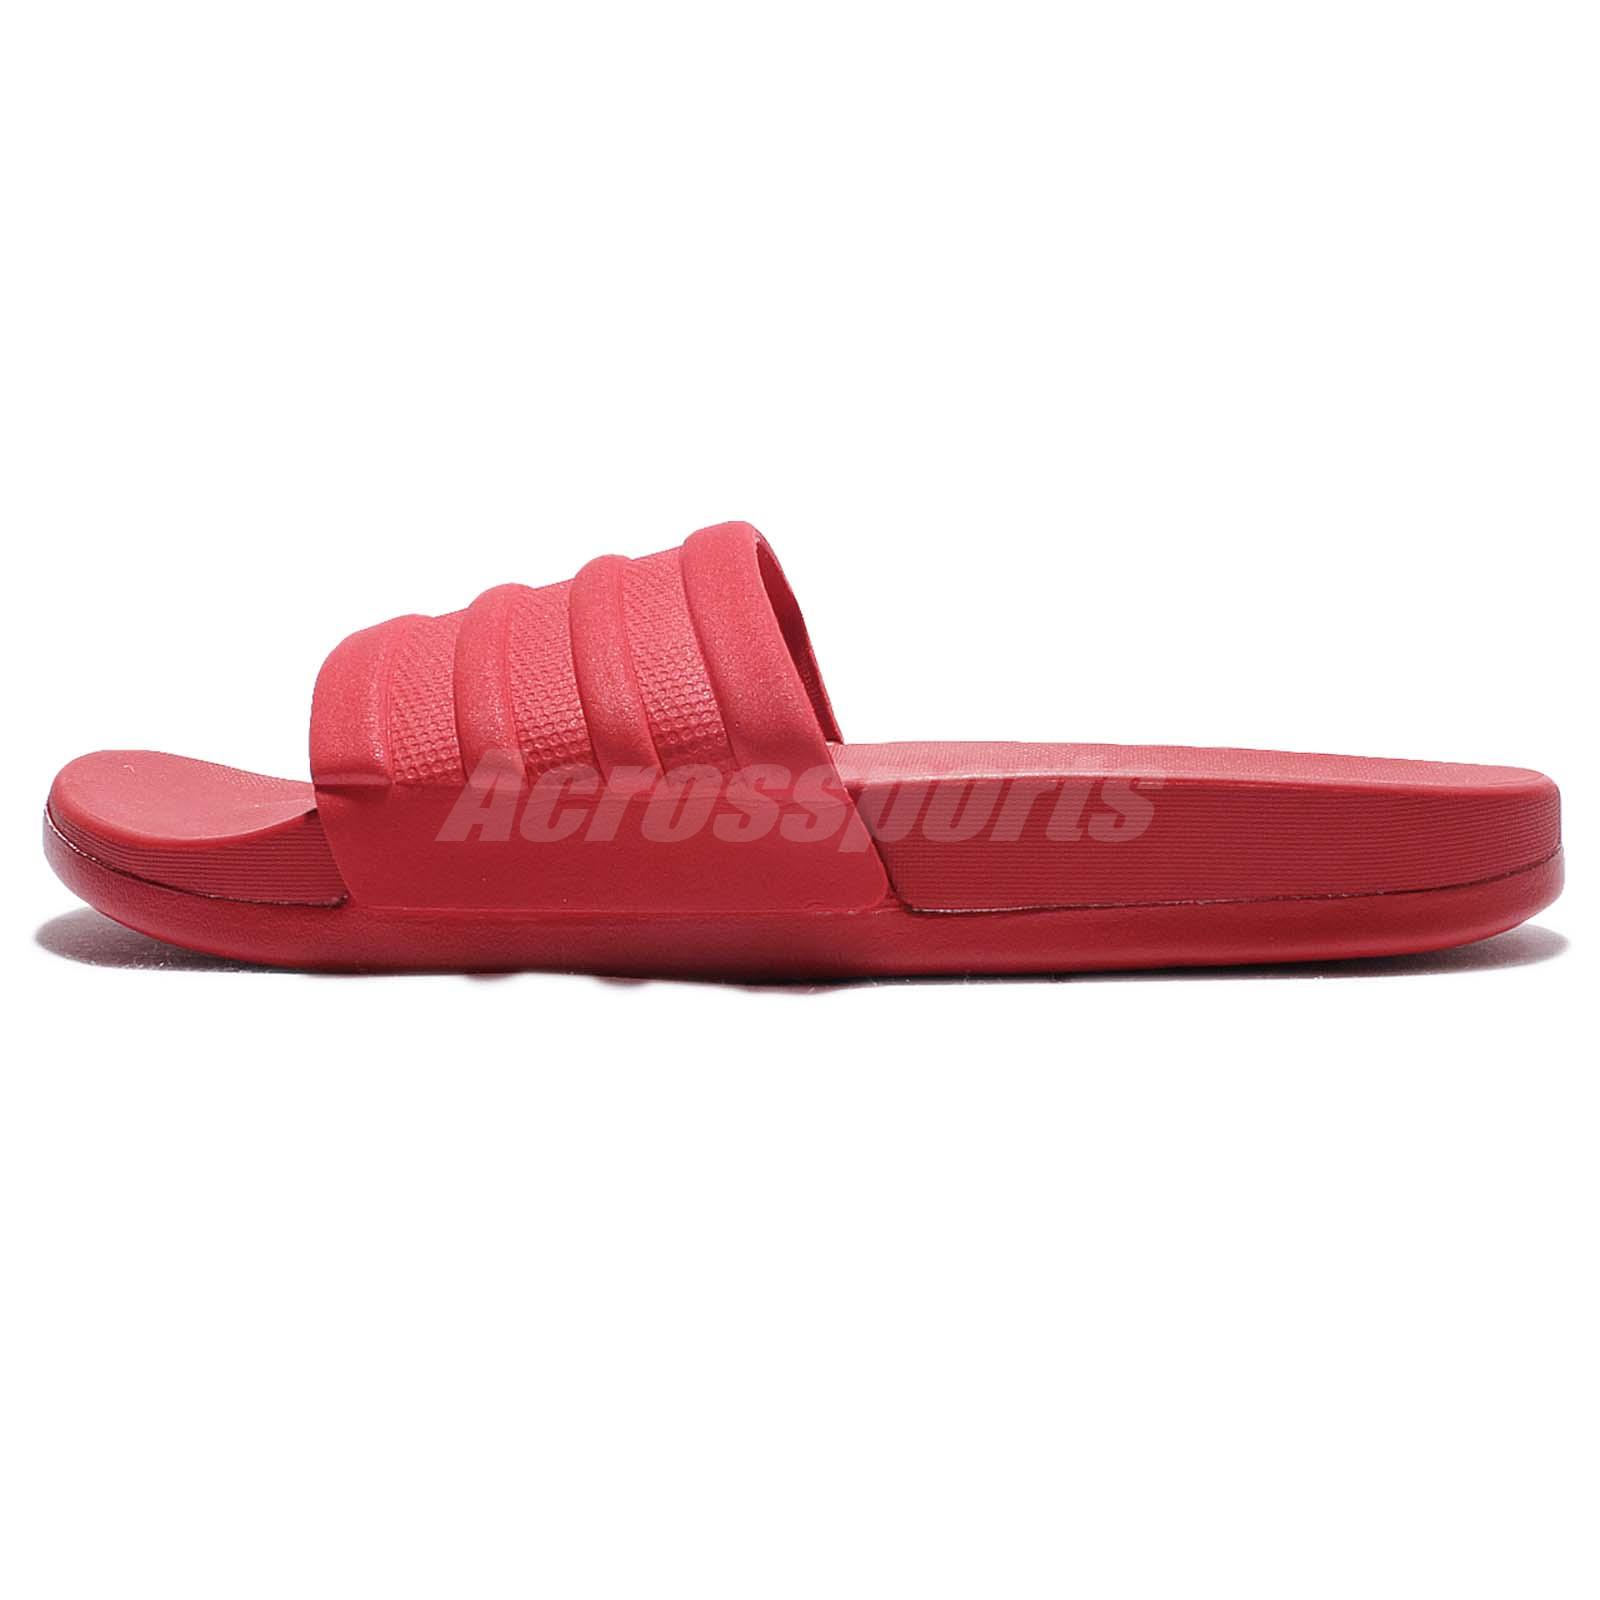 97589c20397a76 red adidas slides womens BB4541 1 red adidas slides womens AG640066 Adidas  Women Swimming Adilette Supercloud Plus Graphic Slides Women Core ...